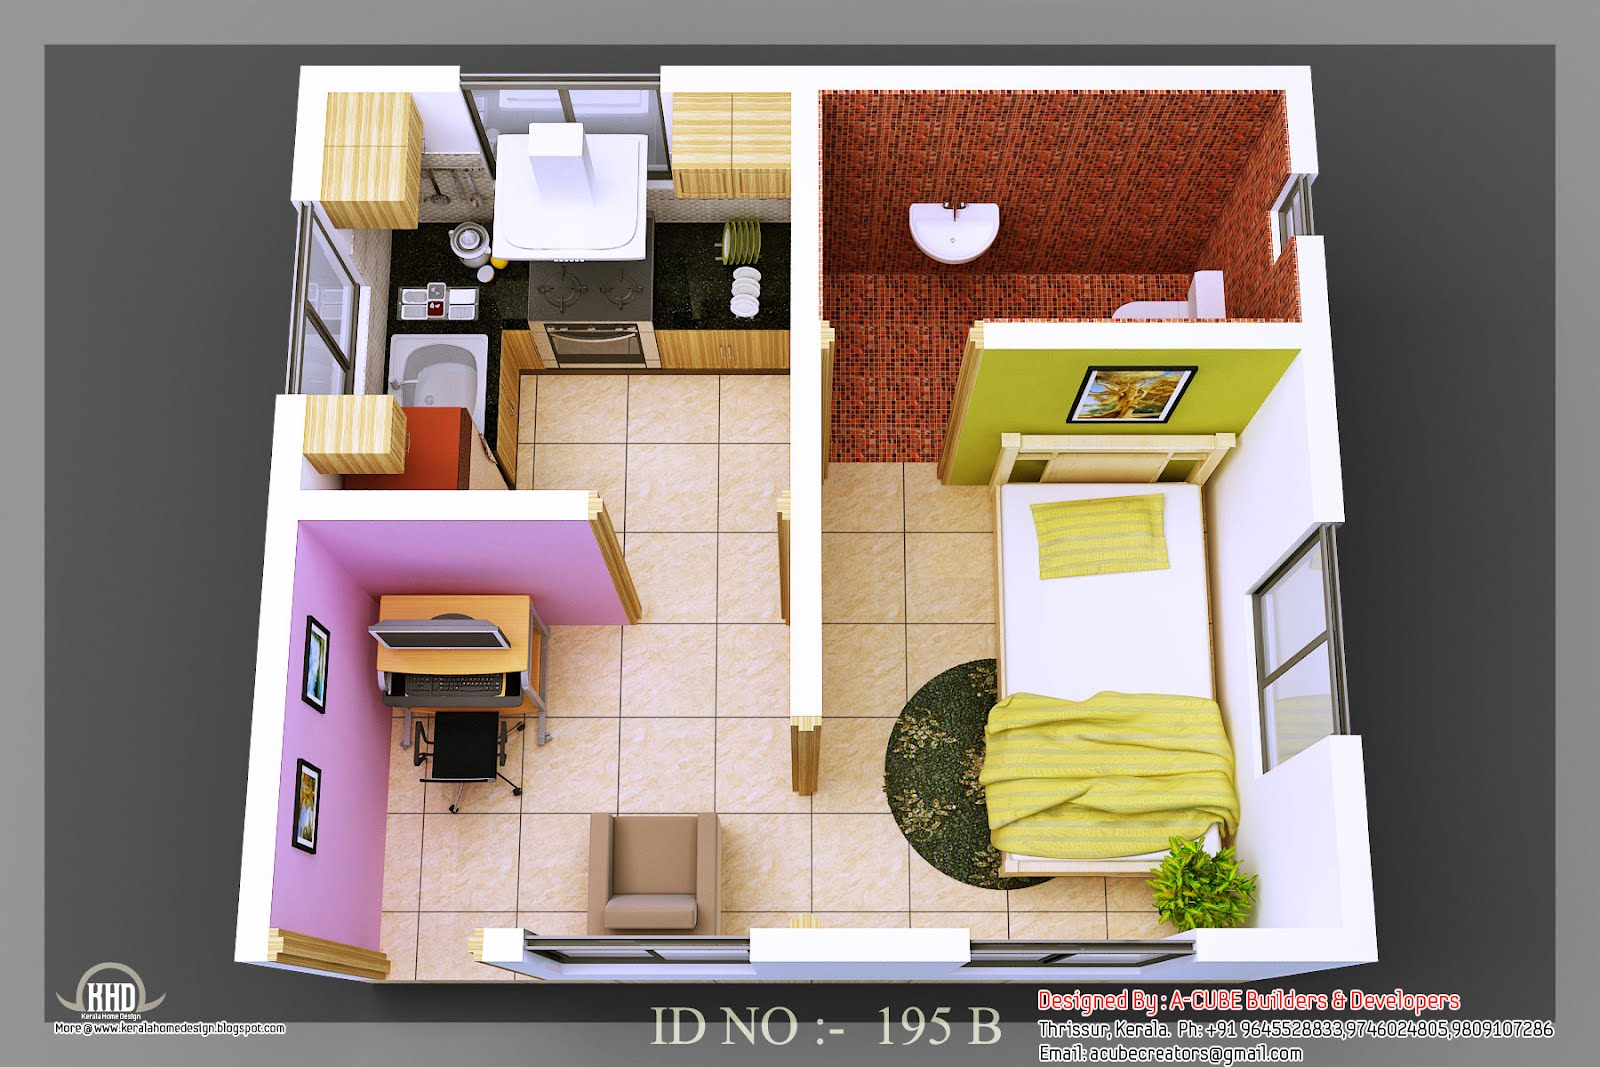 3d isometric views of small house plans home appliance for Small house design ideas